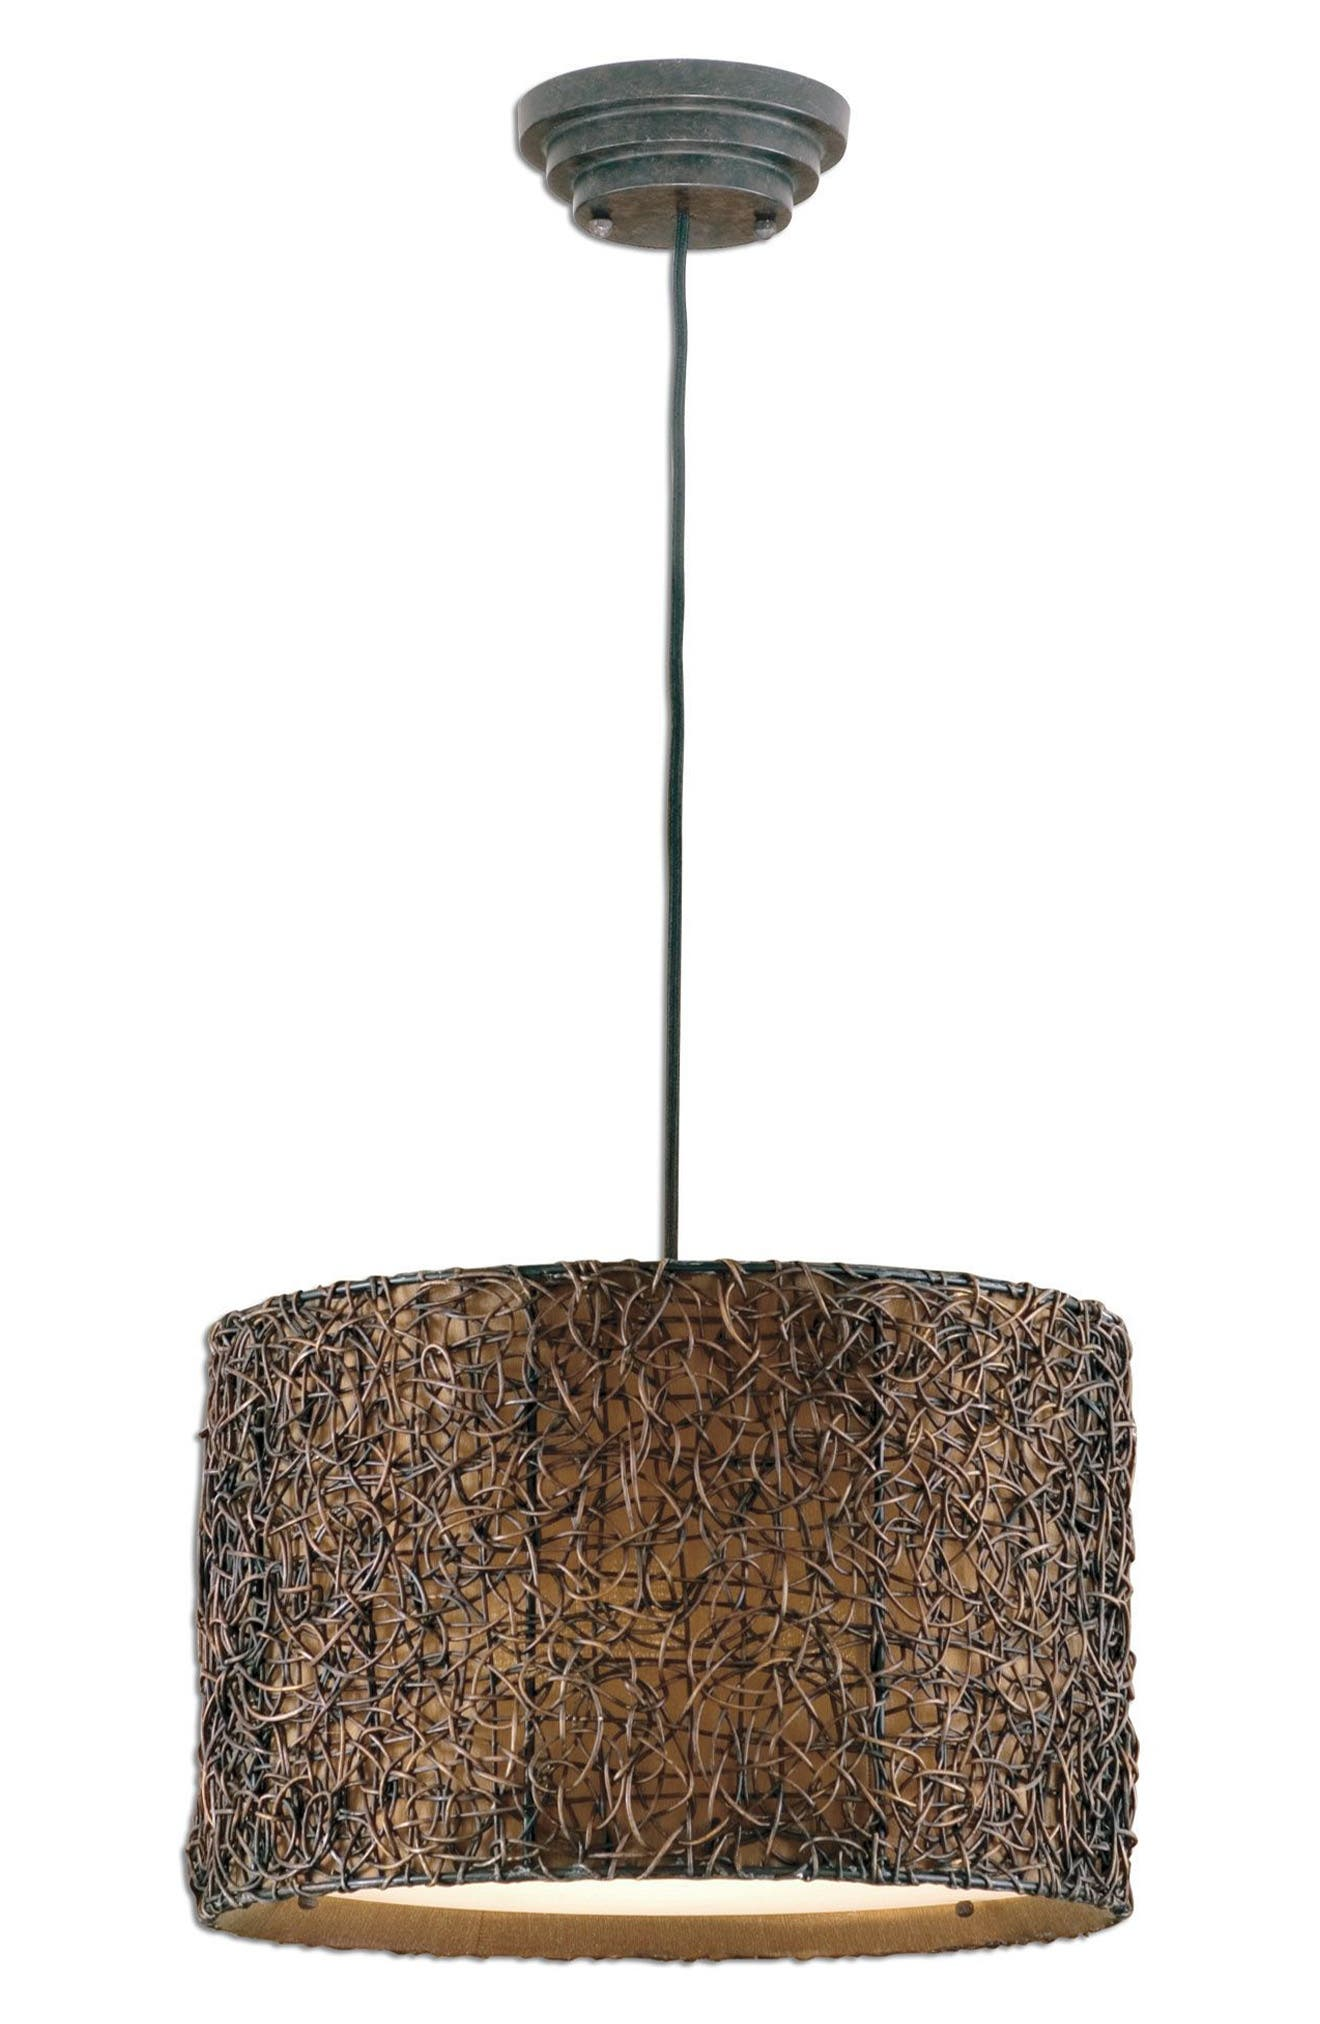 Knotted Rattan Pendant Lamp,                             Main thumbnail 1, color,                             220